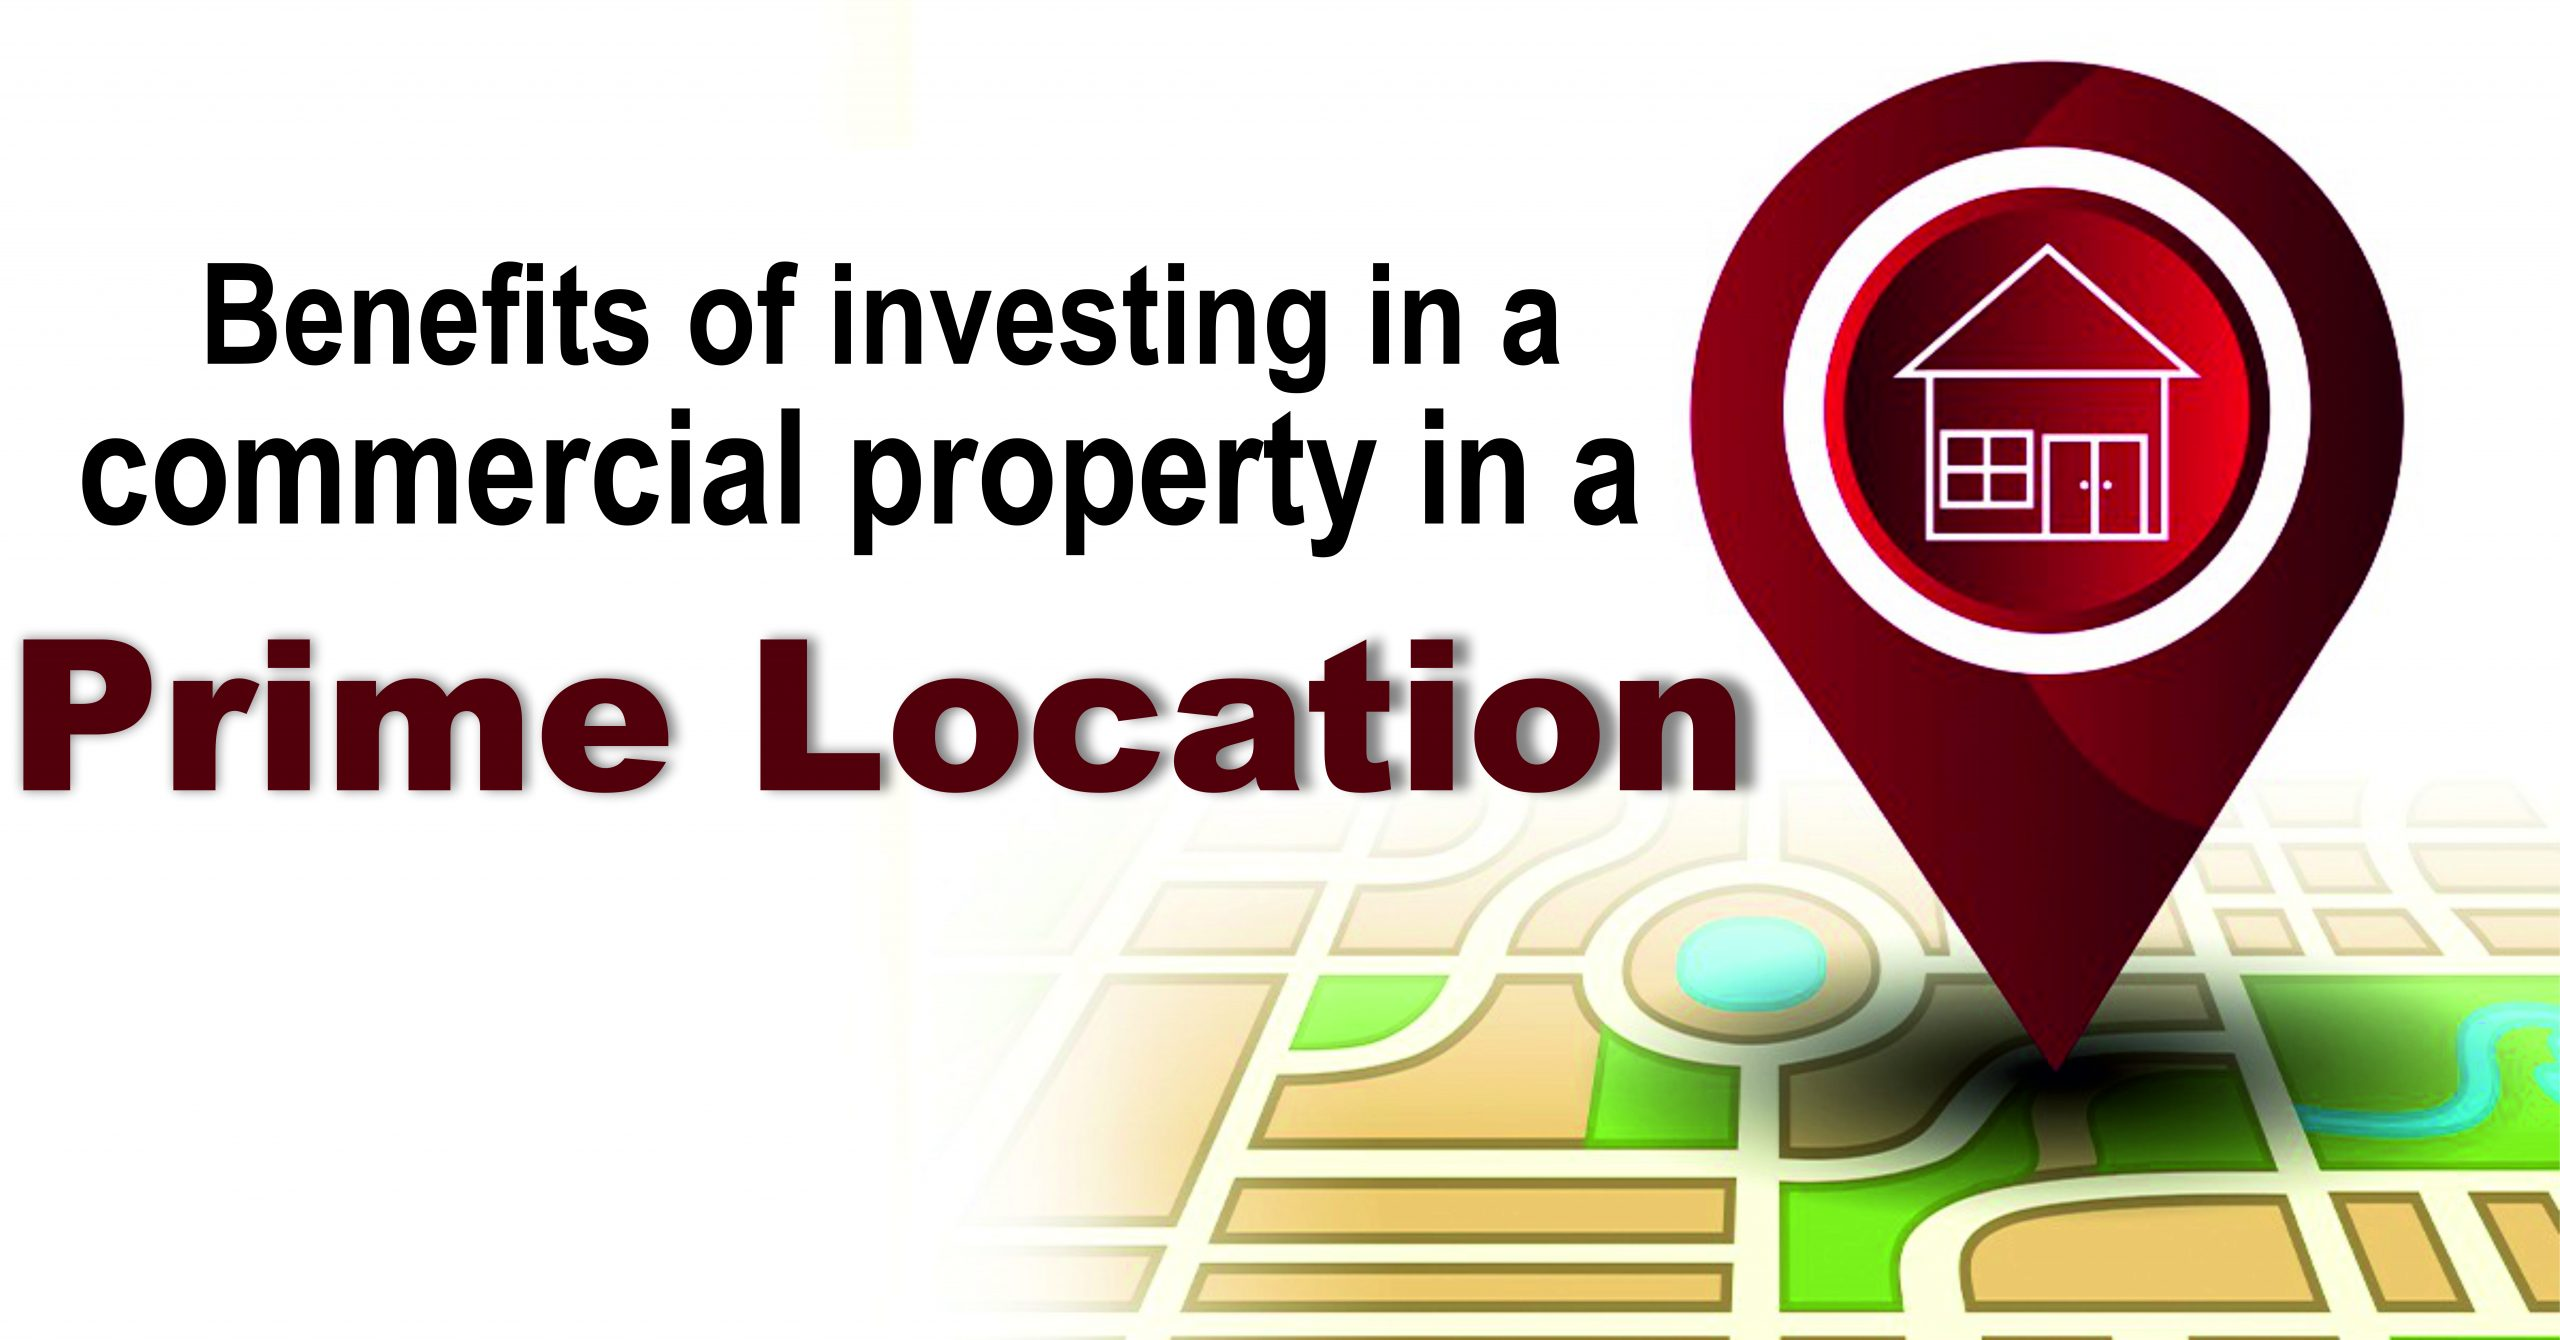 Commercial-property-investment-in-prime-location